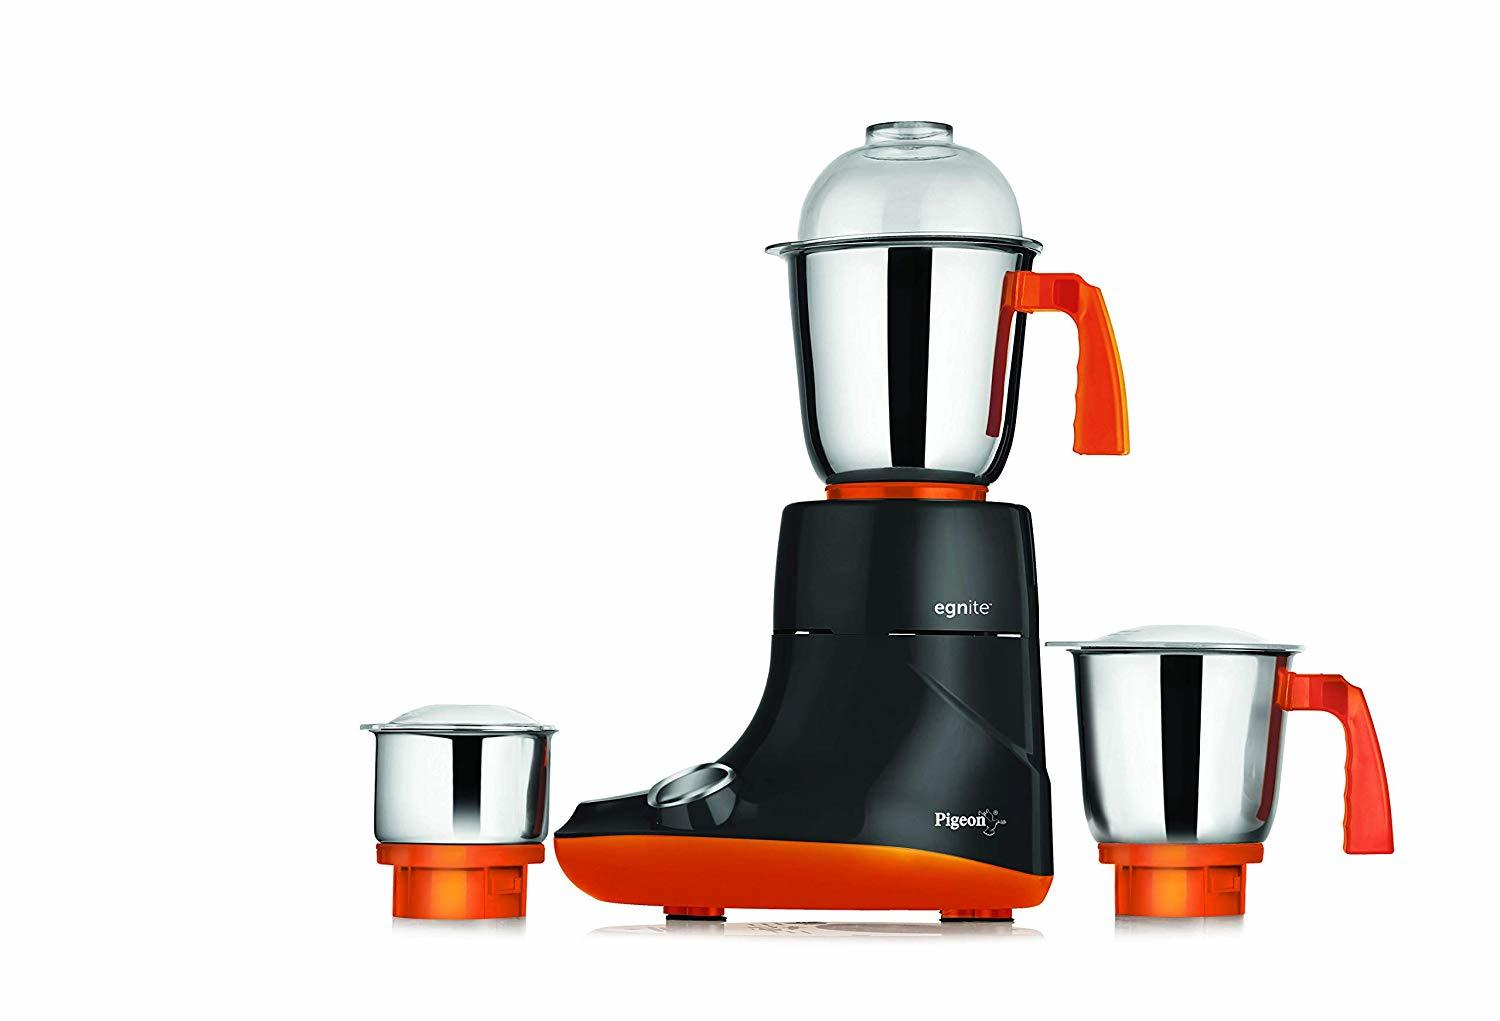 Pigeon by Stovekraft Egnite 750-Watt Mixer Grinder with 3 Jars (Black/Orange)